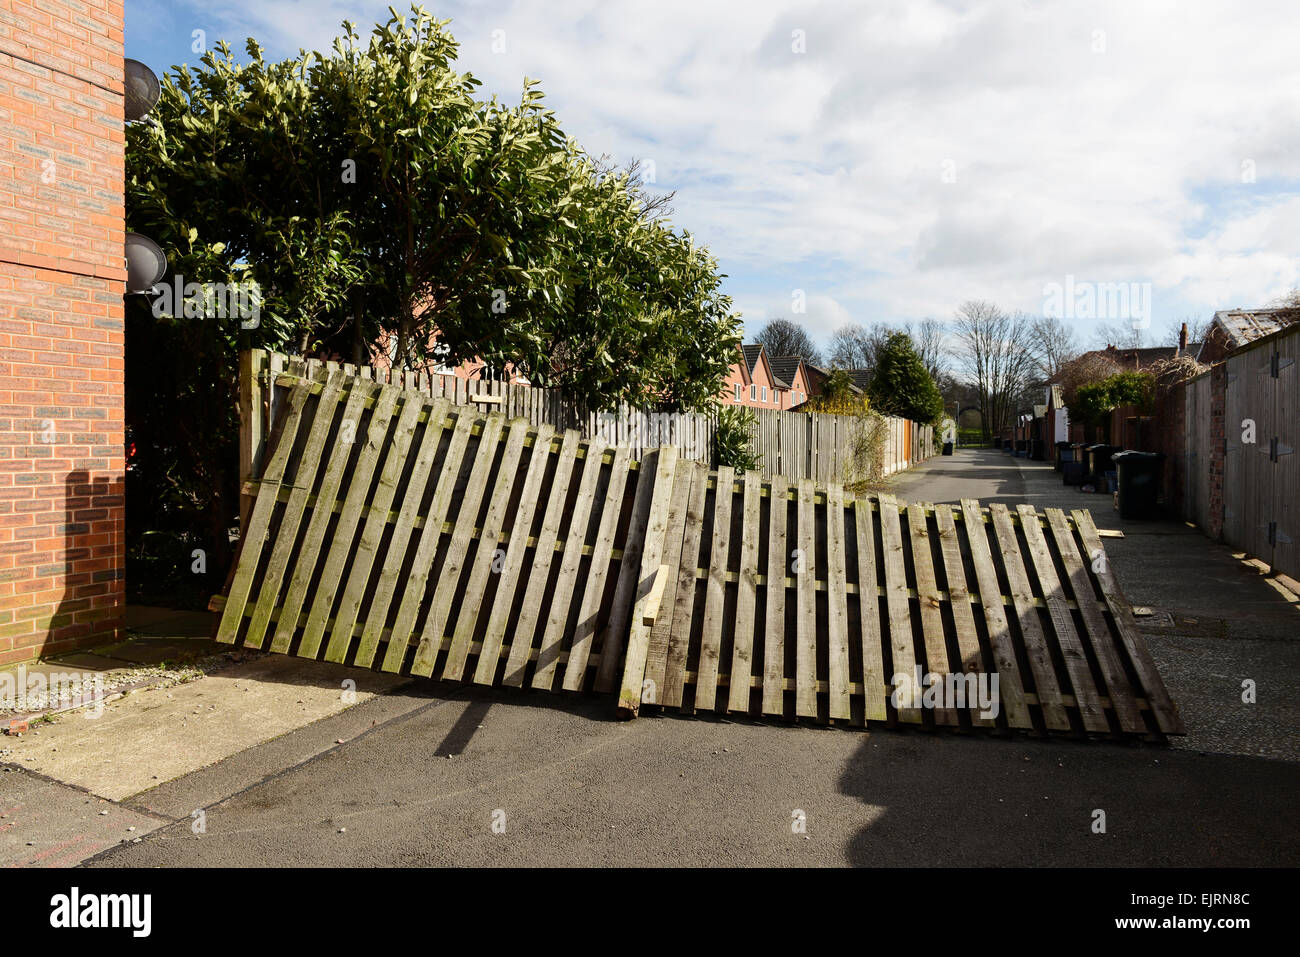 Chester cheshire uk 31st march 2015 uk weather very strong chester cheshire uk 31st march 2015 uk weather very strong winds have damaged large wooden fence panels credit andrew patersonalamy live news baanklon Images